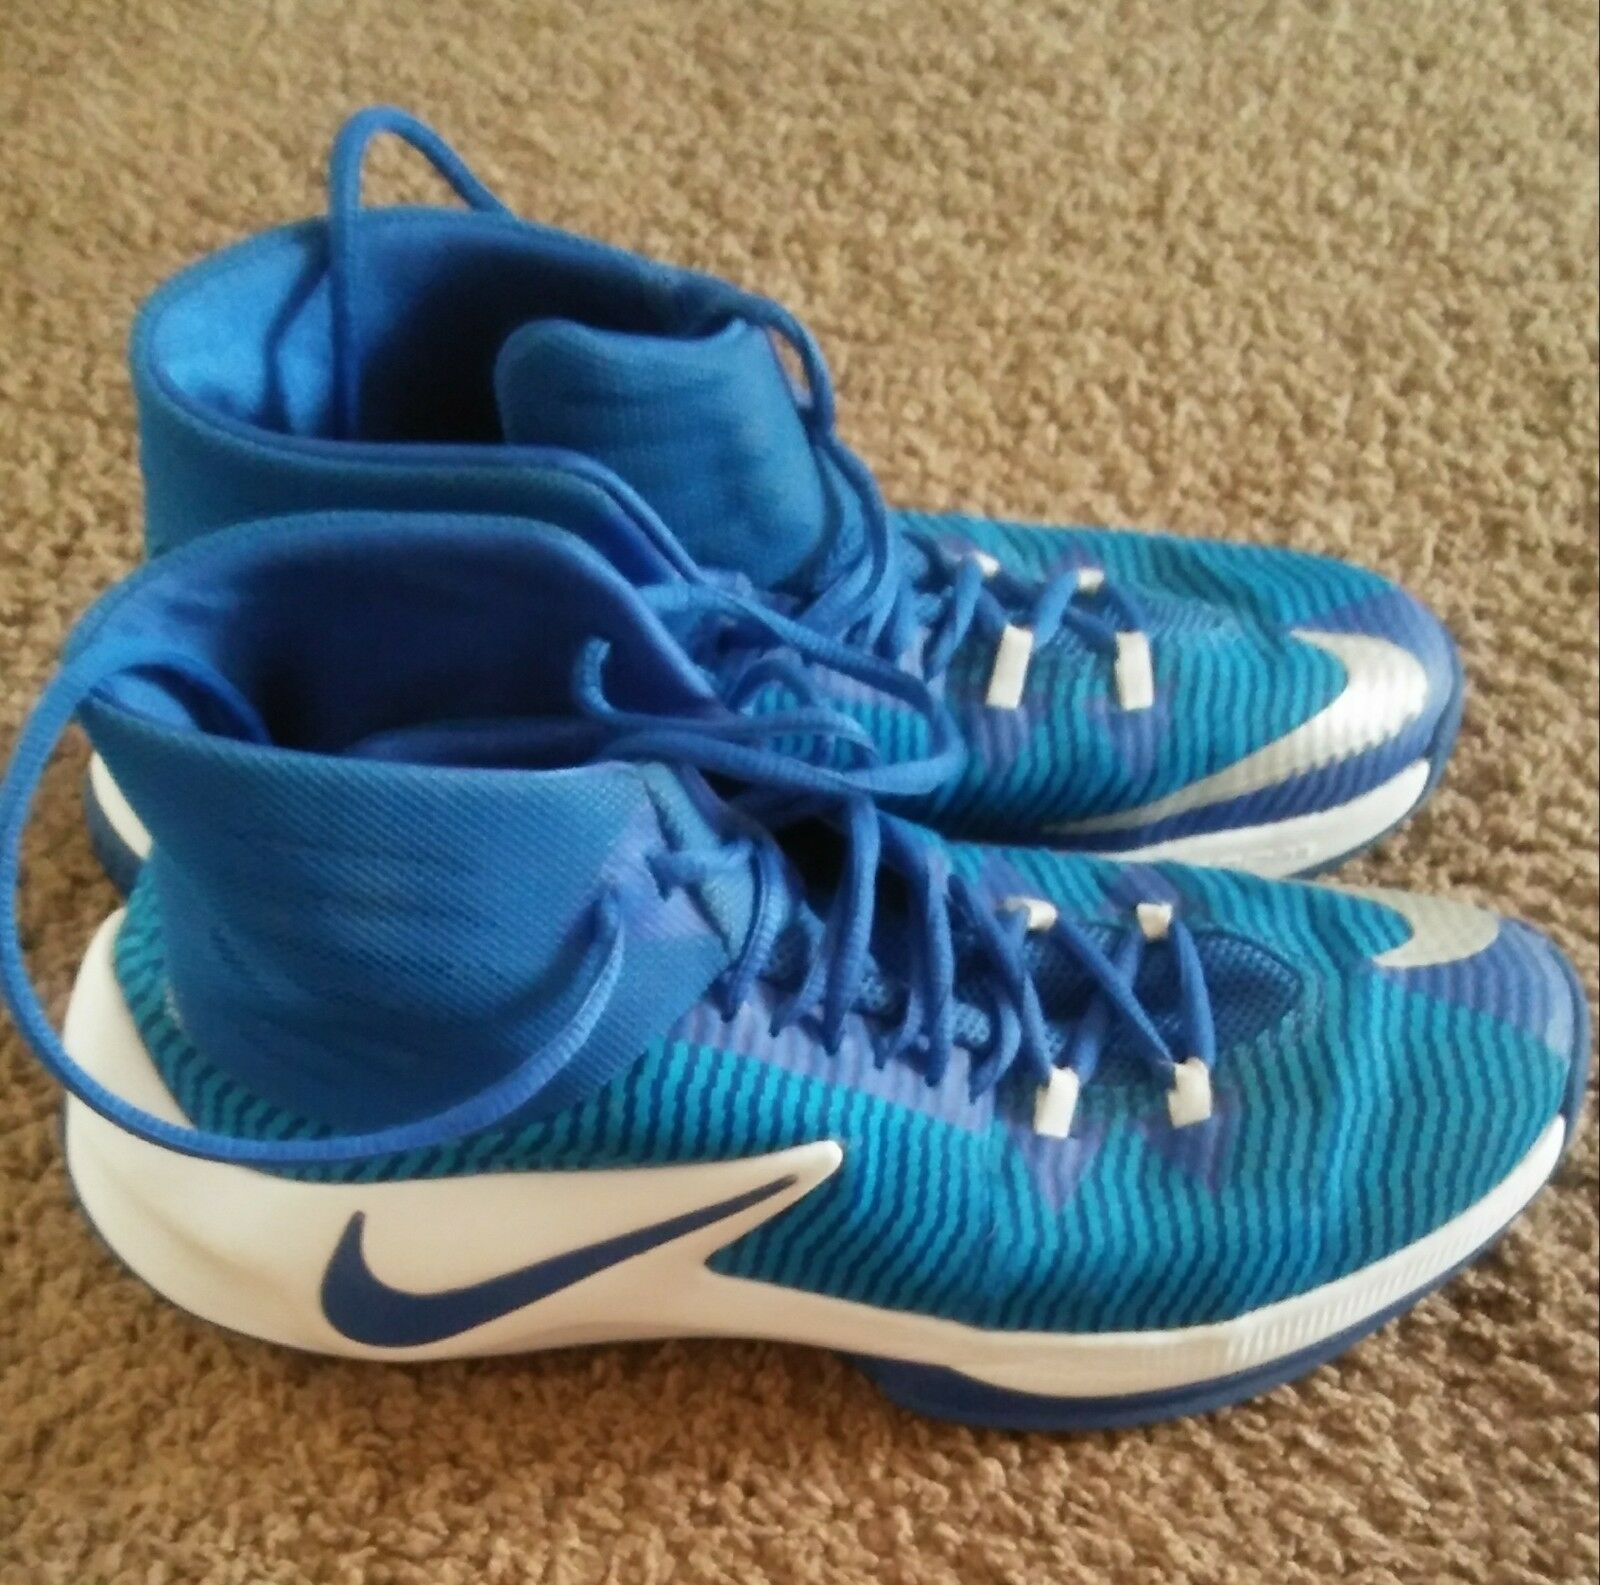 Nike Zoom Clear Out Mens Size 10.5 Basketball Shoe Royal Blue/White EUC ClearOut